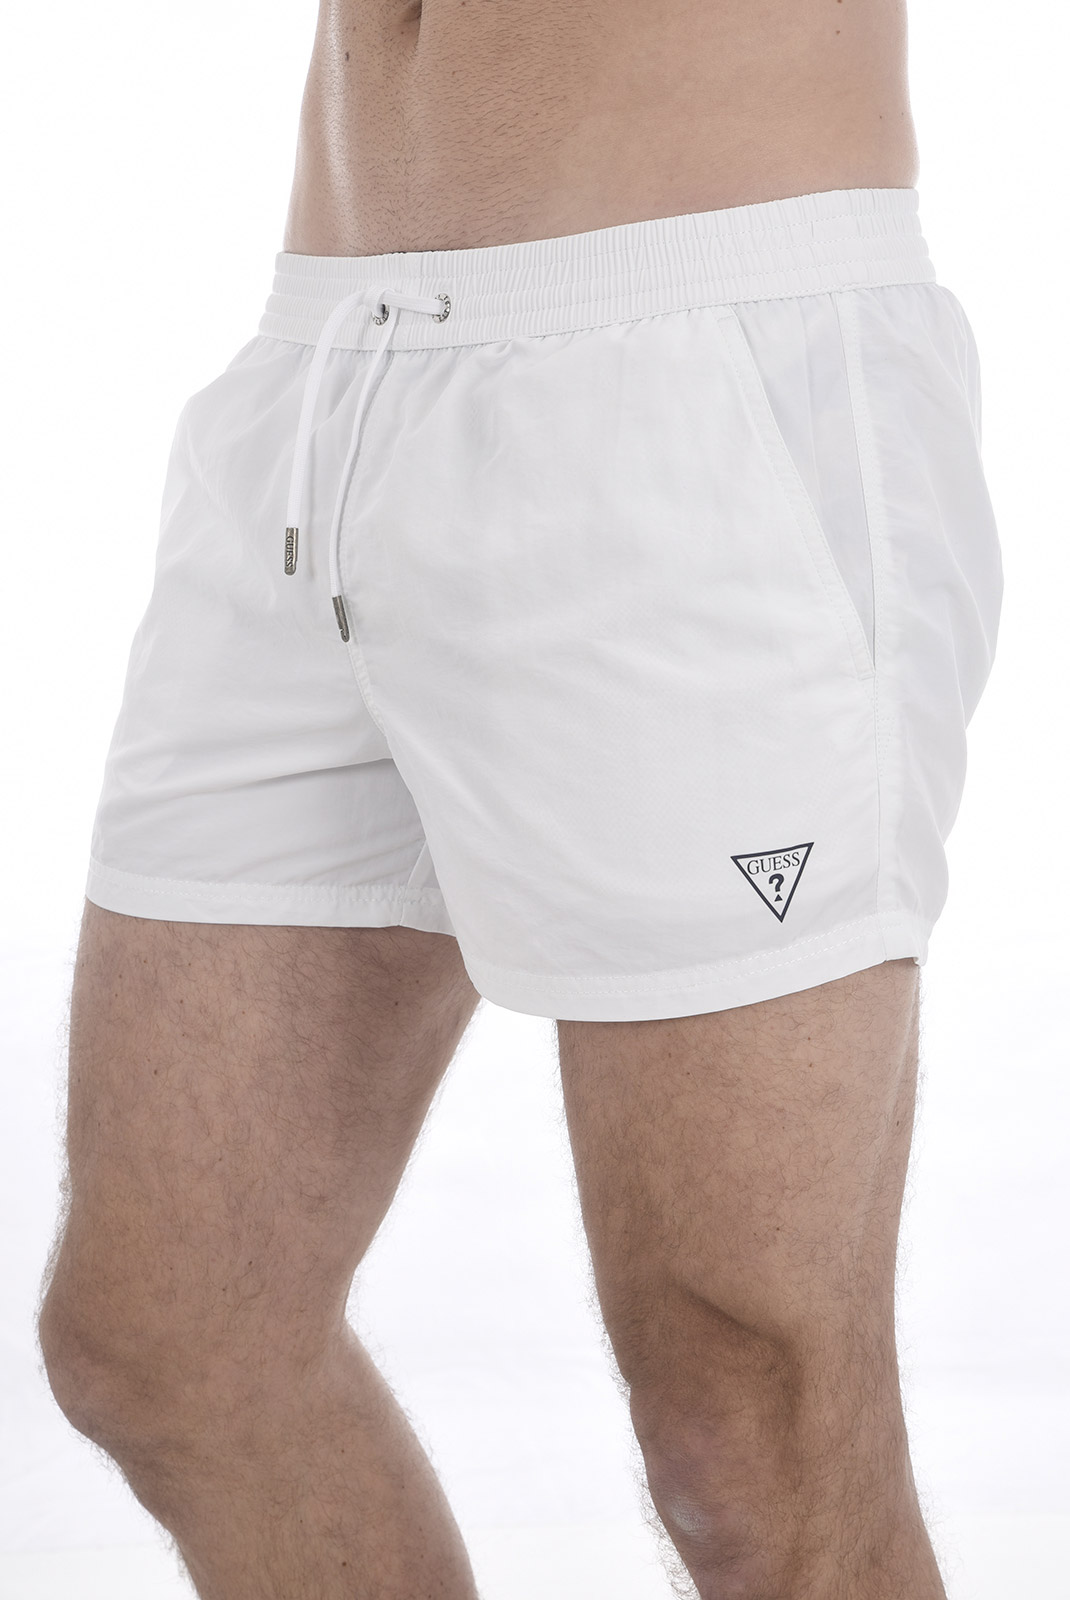 Shorts de bain  Guess jeans F82T00 TEL27 A009 OPTIC WHITE